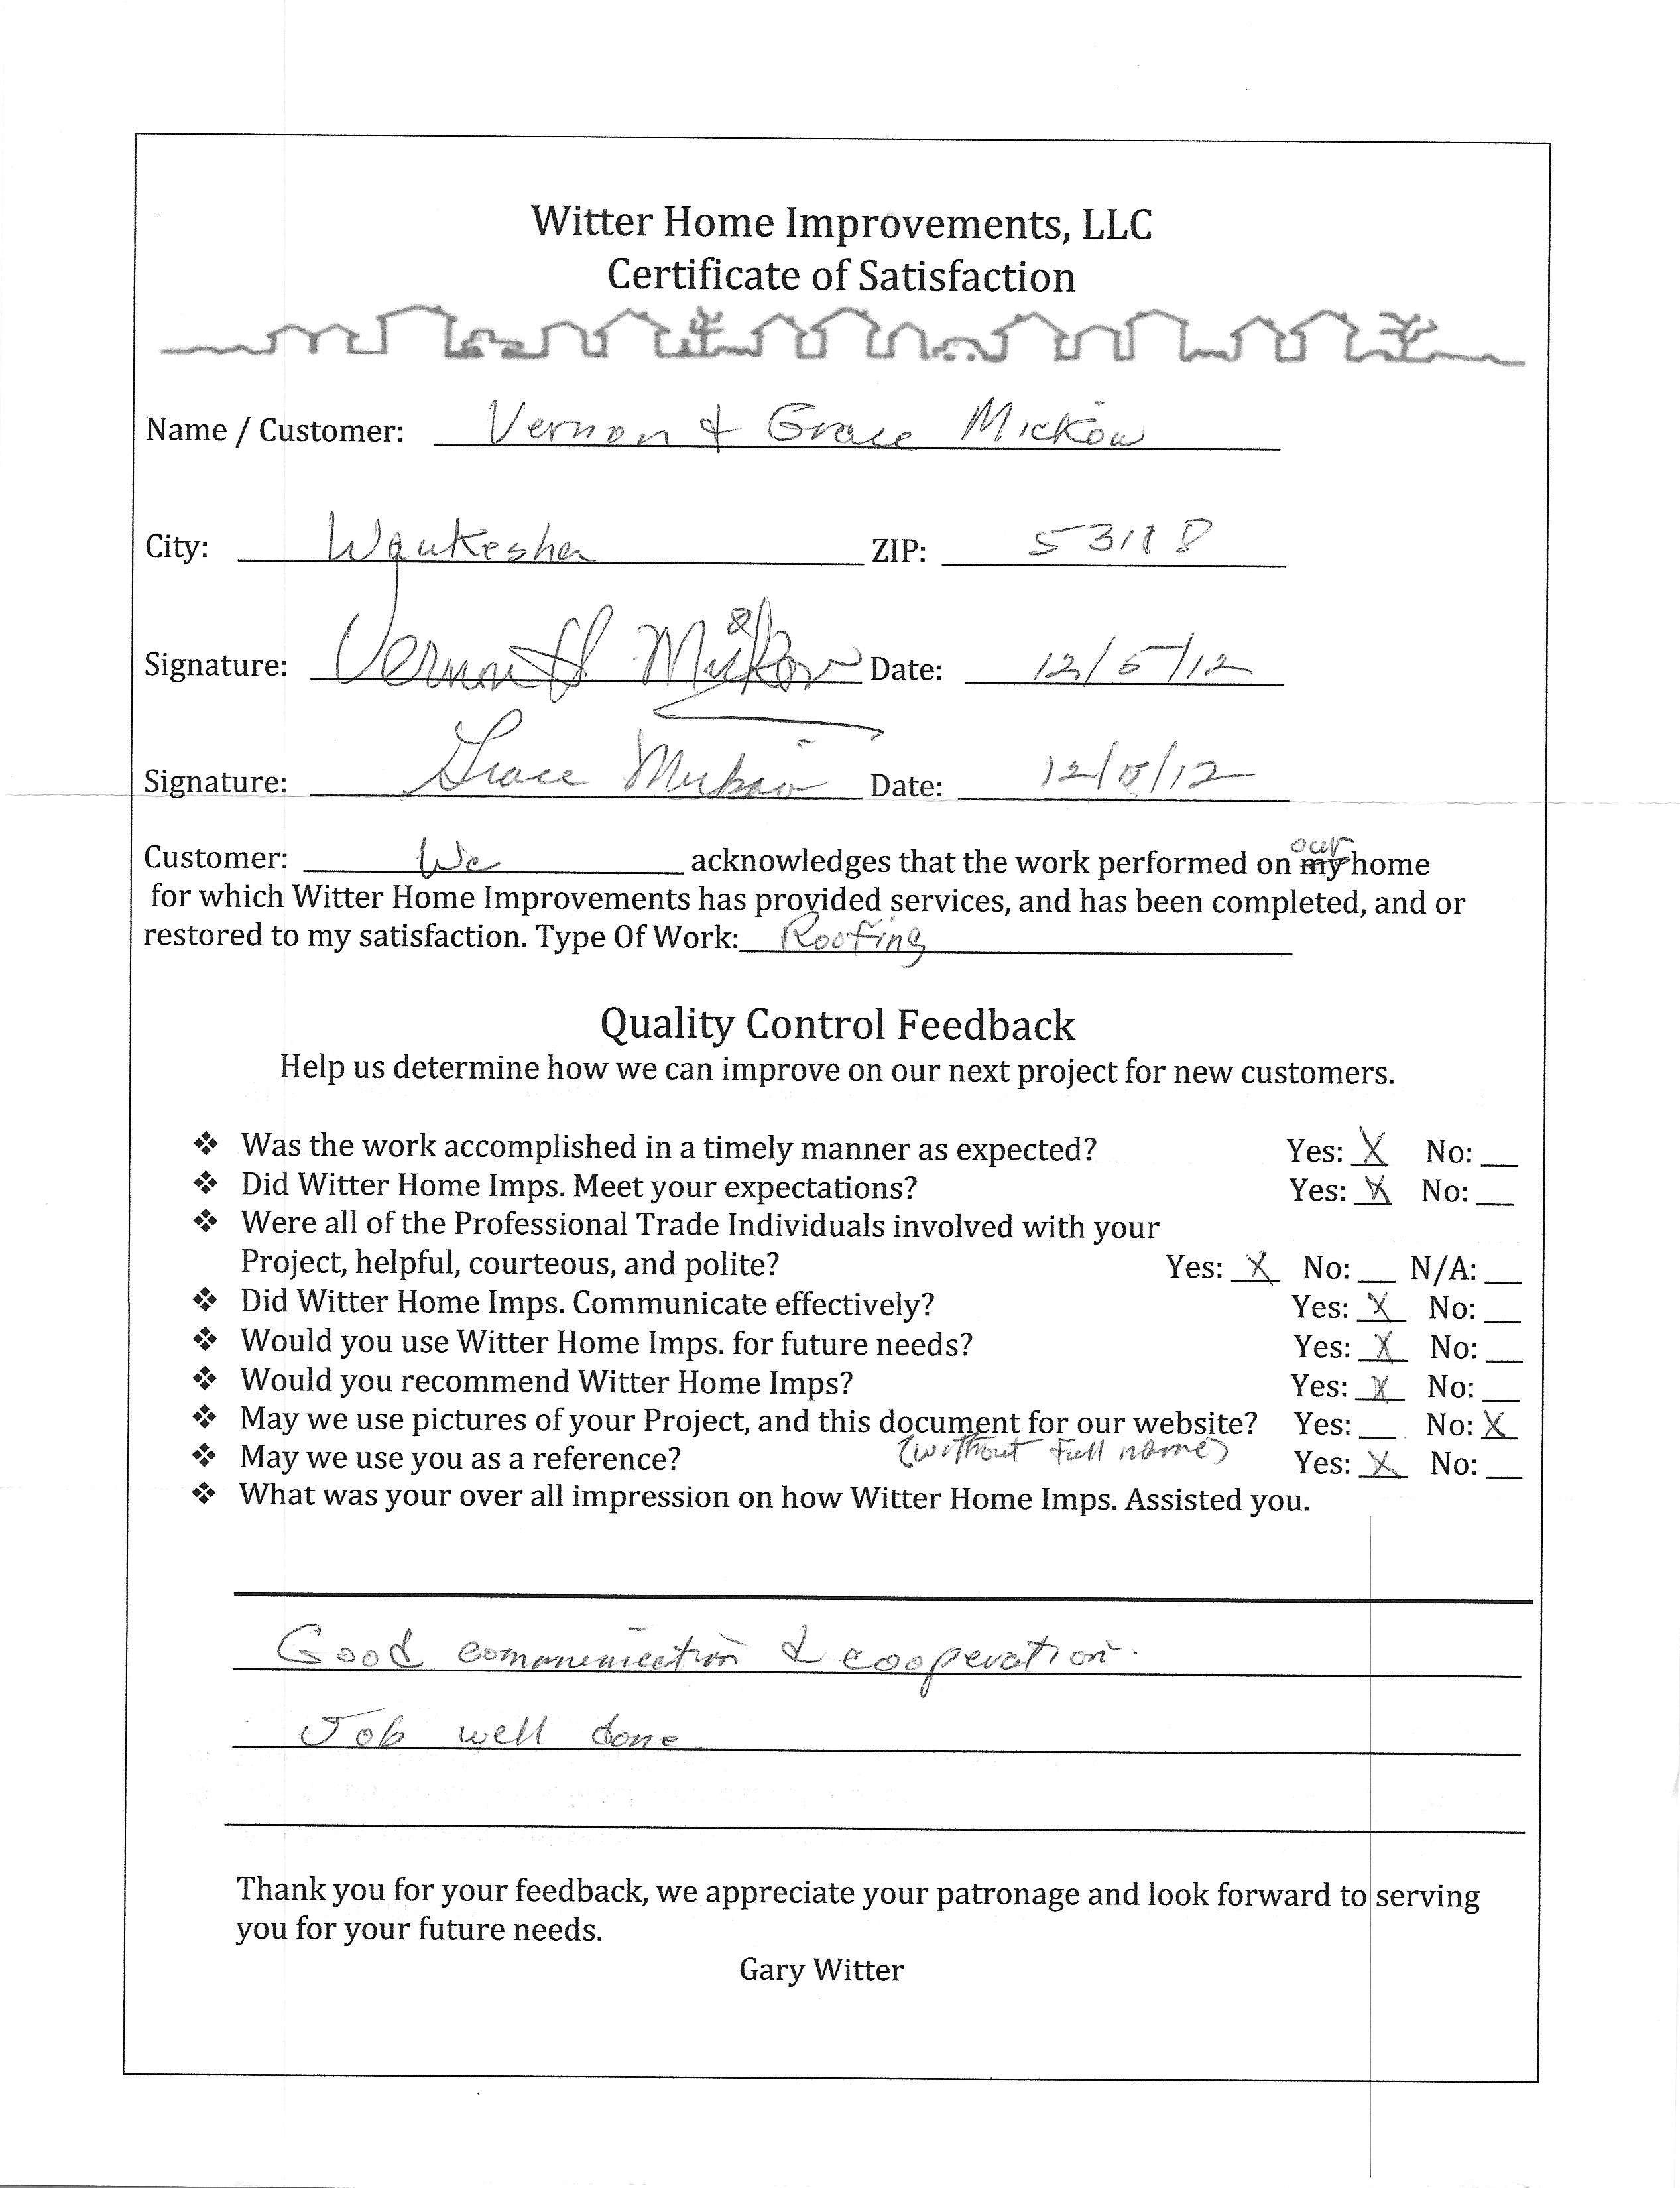 Roof Certificate Amp Roofing Warranty Certificate 56 With